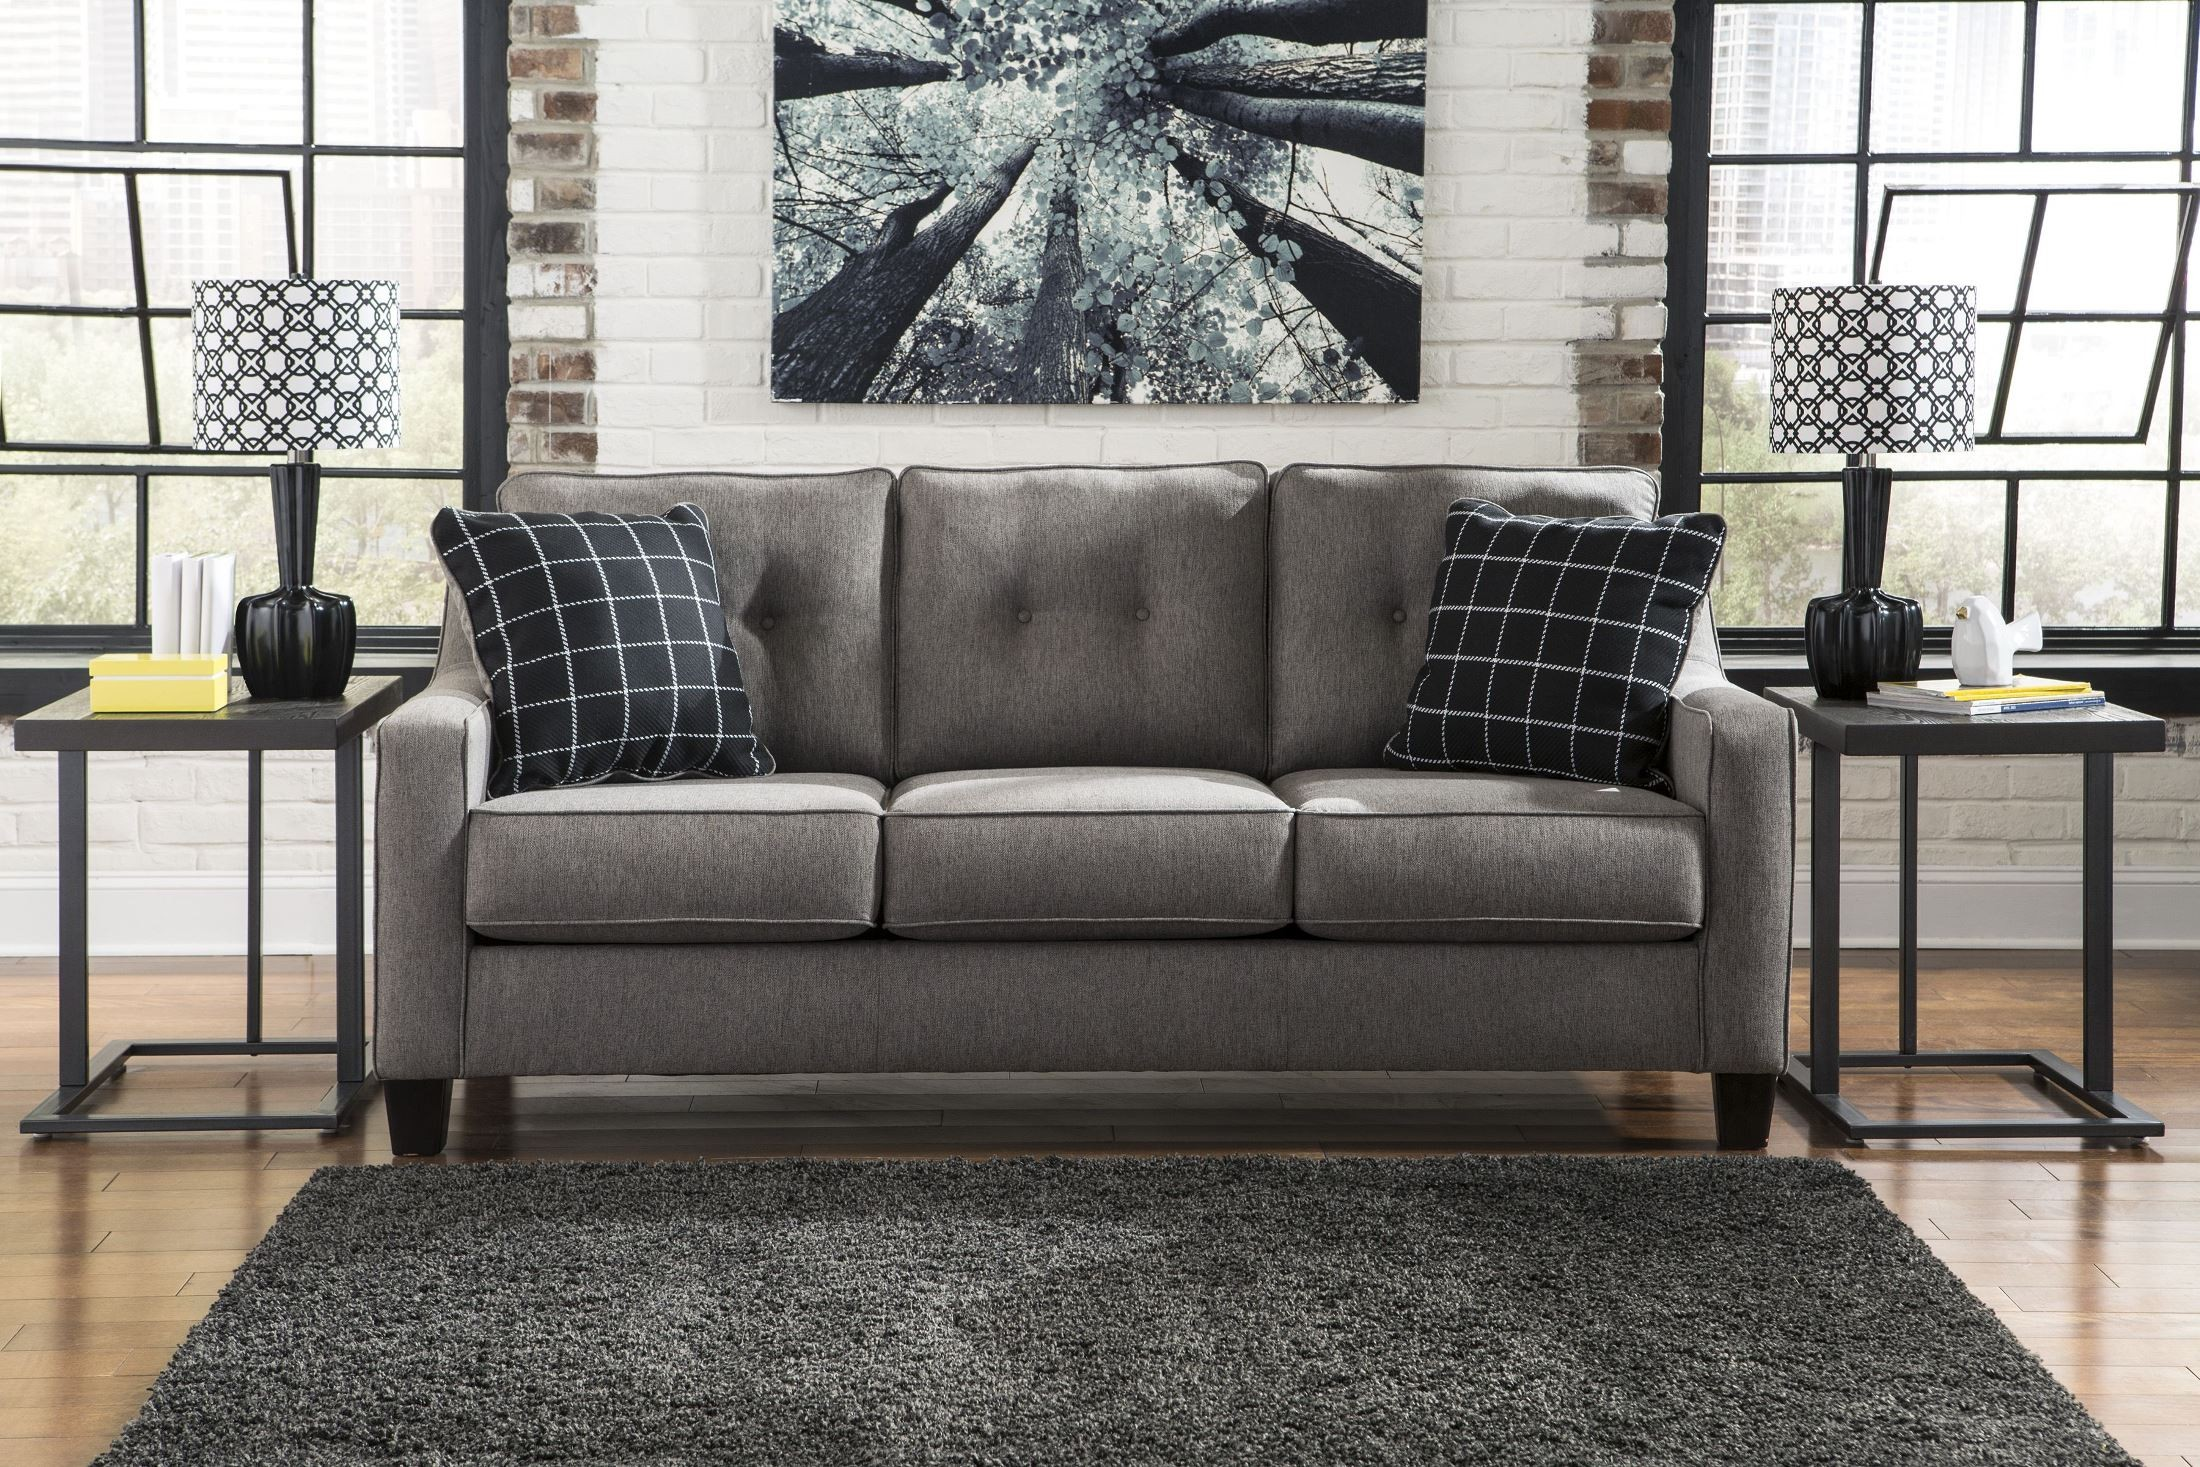 Brindon Charcoal Sofa from Ashley